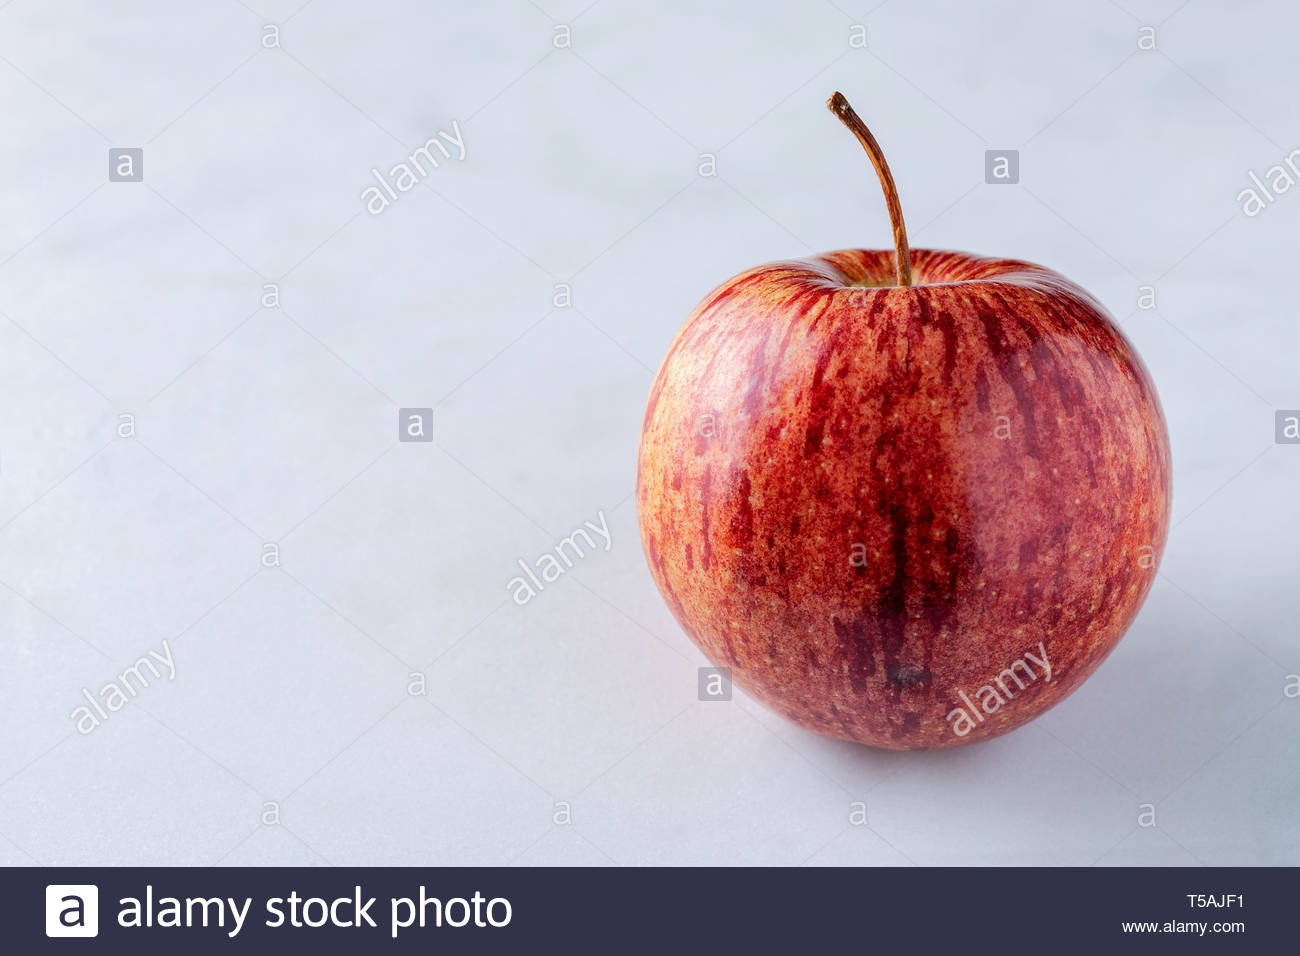 Apple Close Up Shot Of Apple Skin Showing Pattern And Texture With Stem And Copy Text Space To Left Stock Photo Alamy